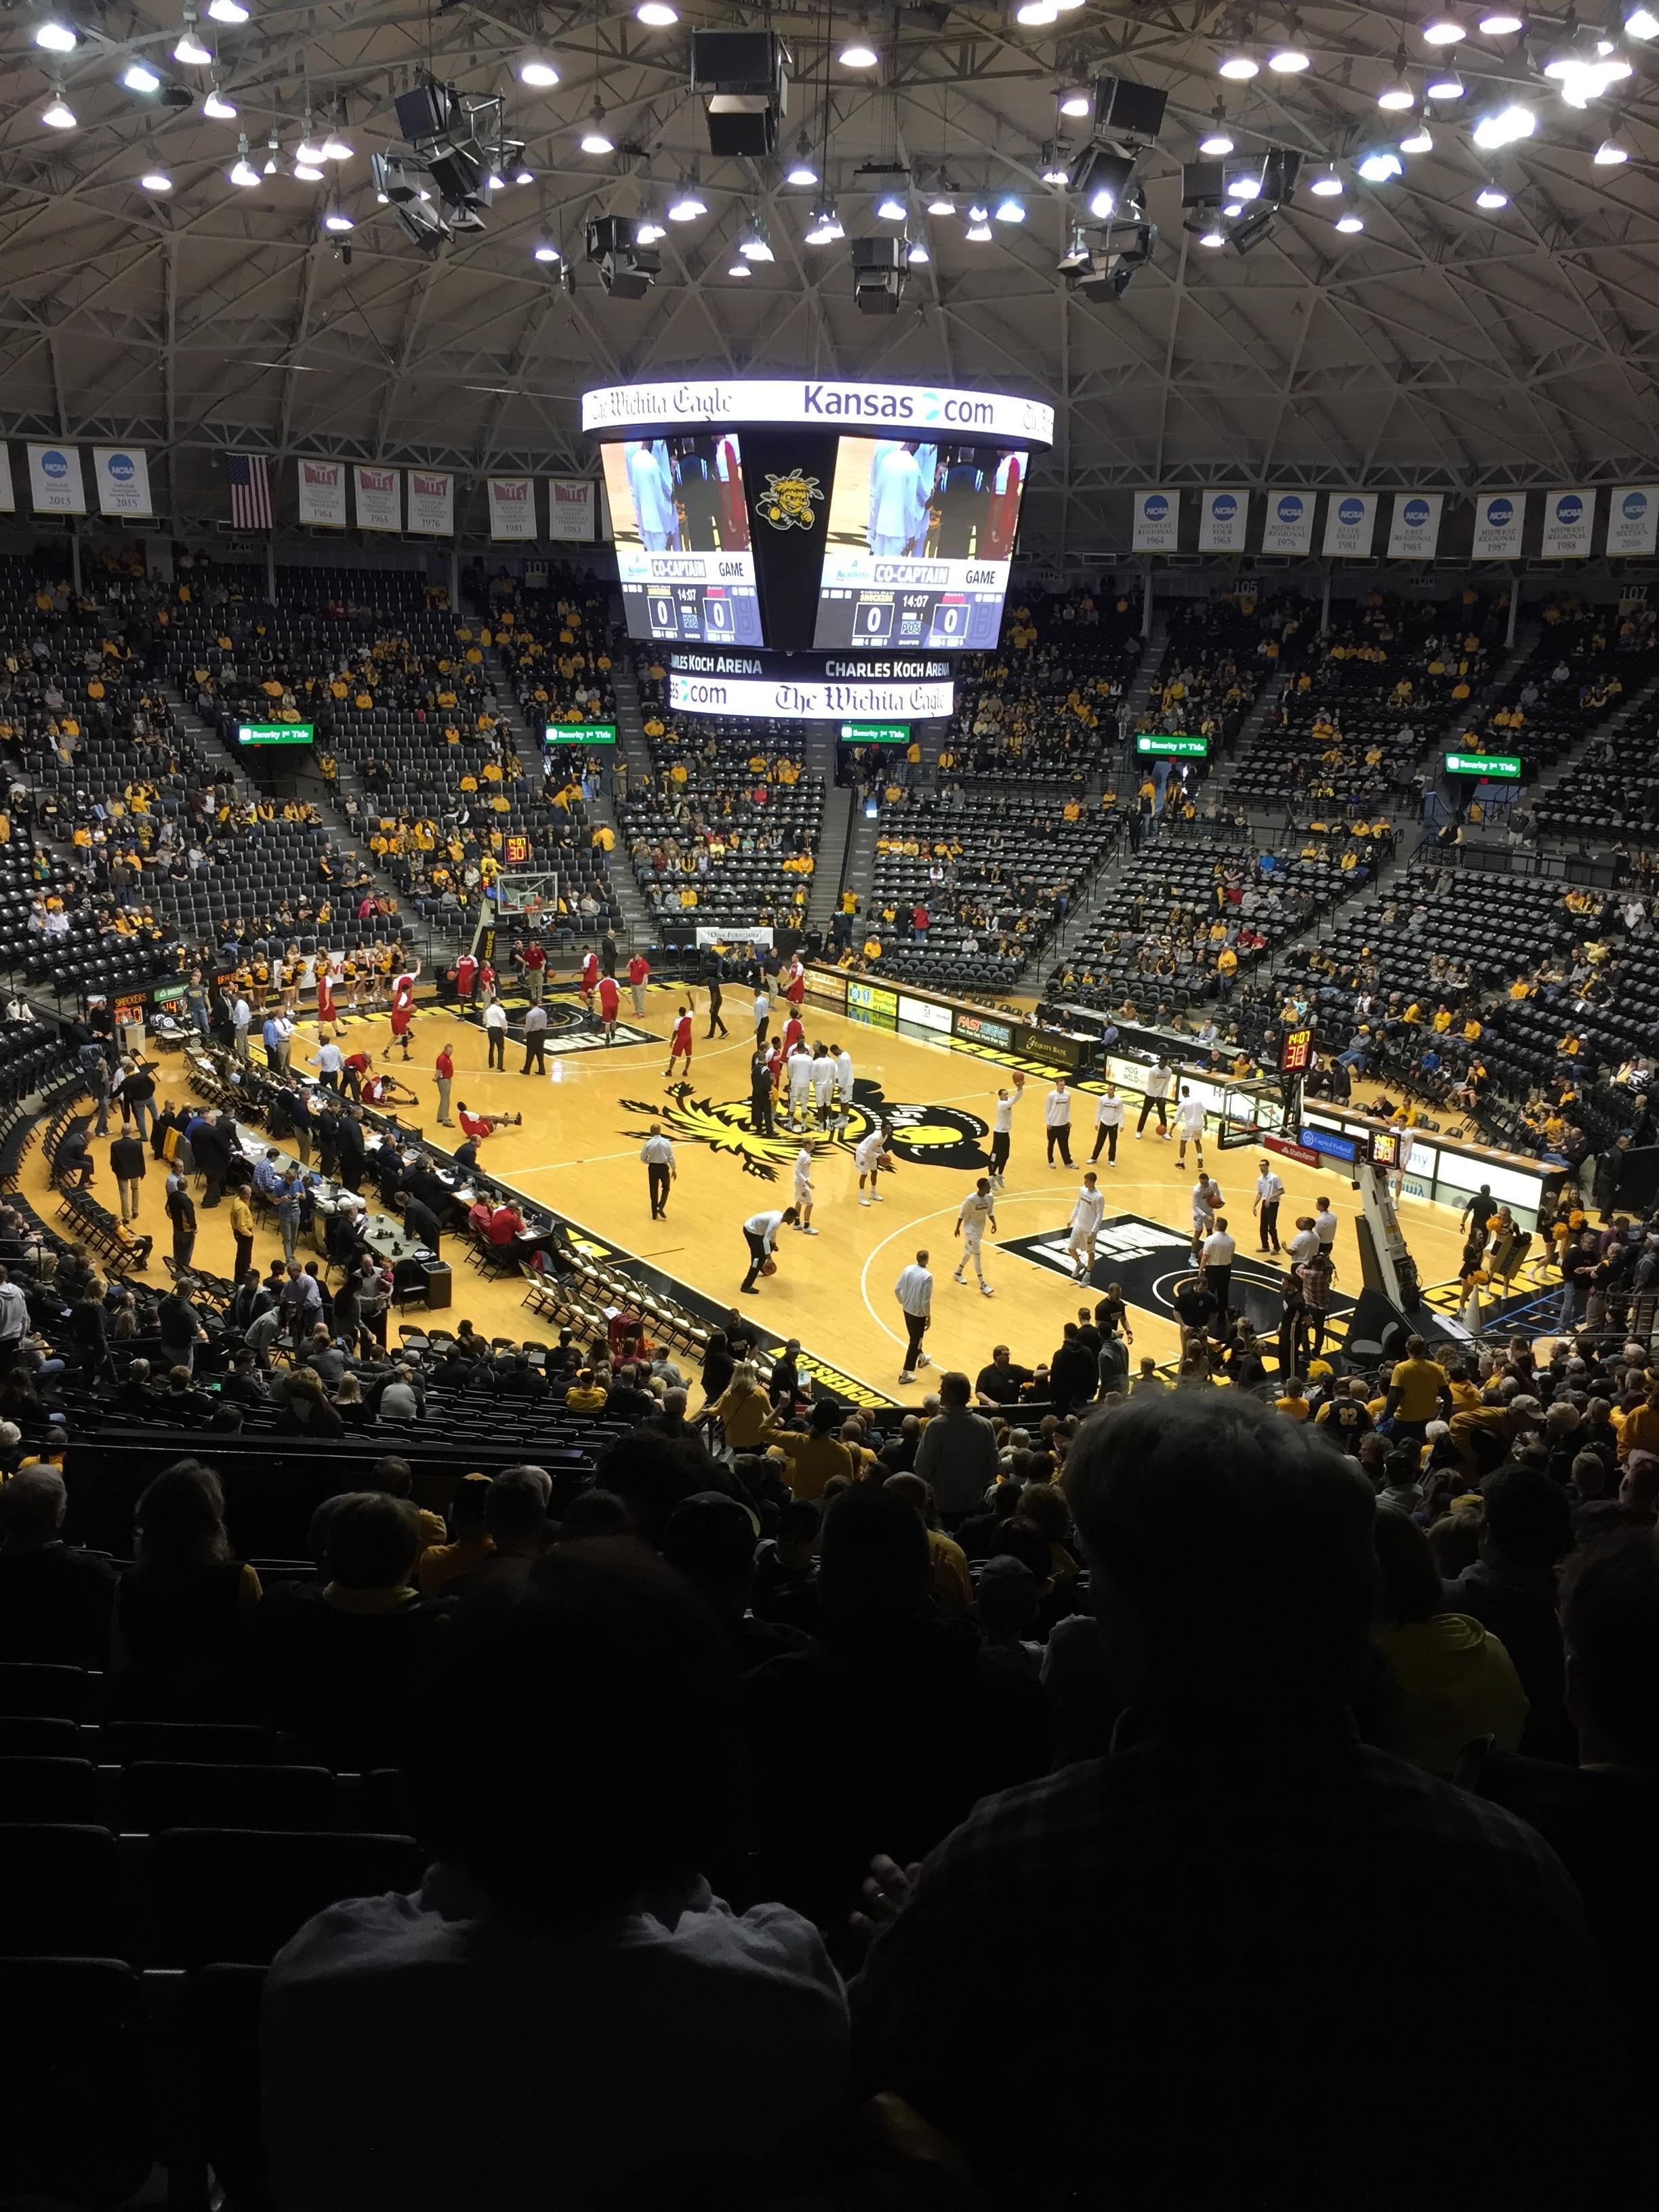 Charles Koch arena Section 118 Row 32 Seat 19